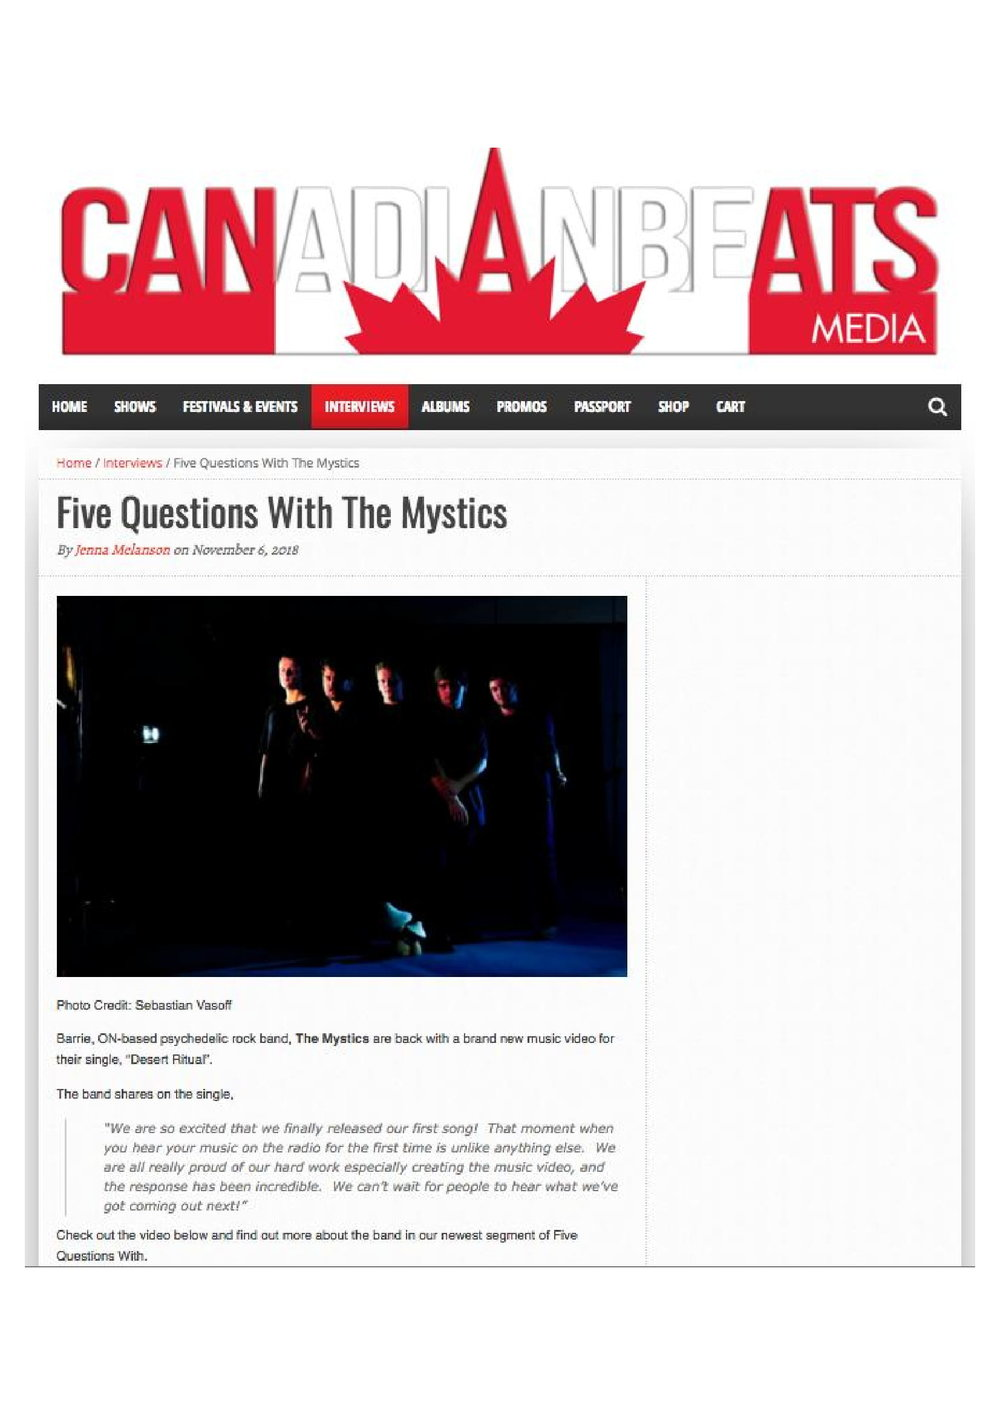 PRESS Canadian Beats - The Mystics Nov 6th 2018-1.jpg